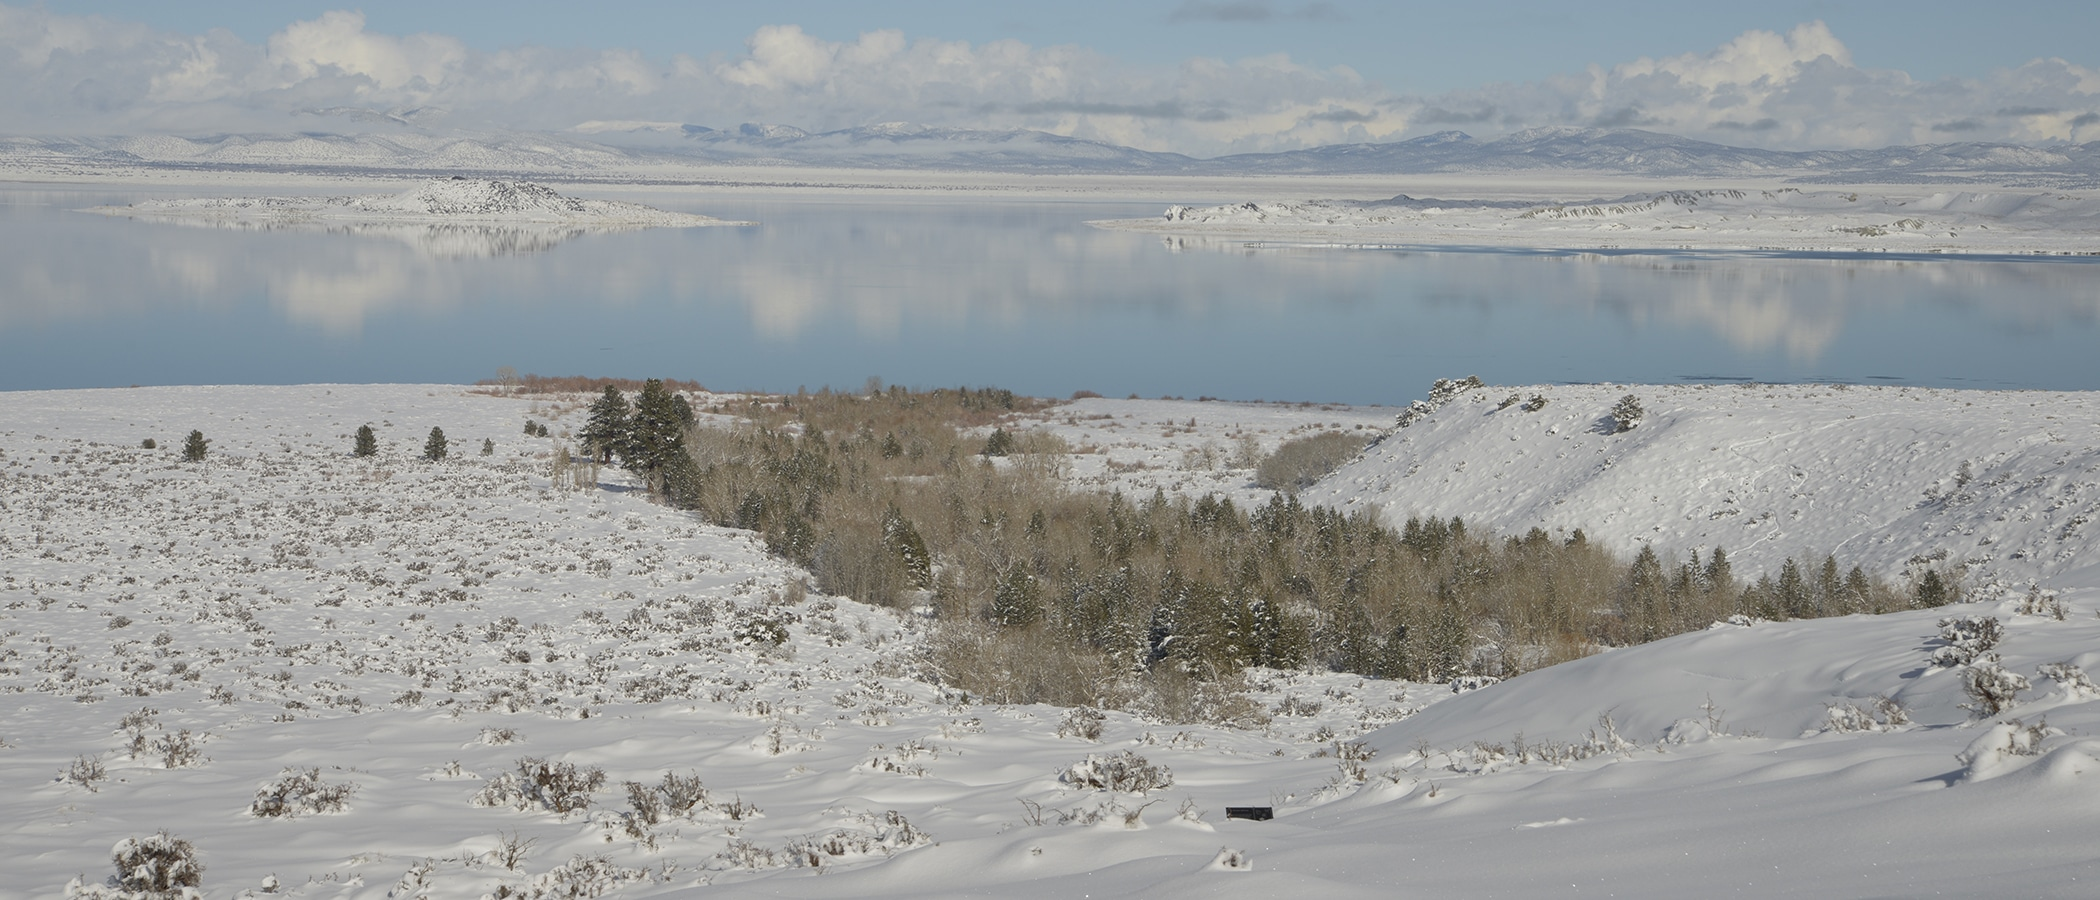 The islands on Mono Lake and surrounding mountains are covered in snow, and the still water reflects the light blue and cloudy sky above.